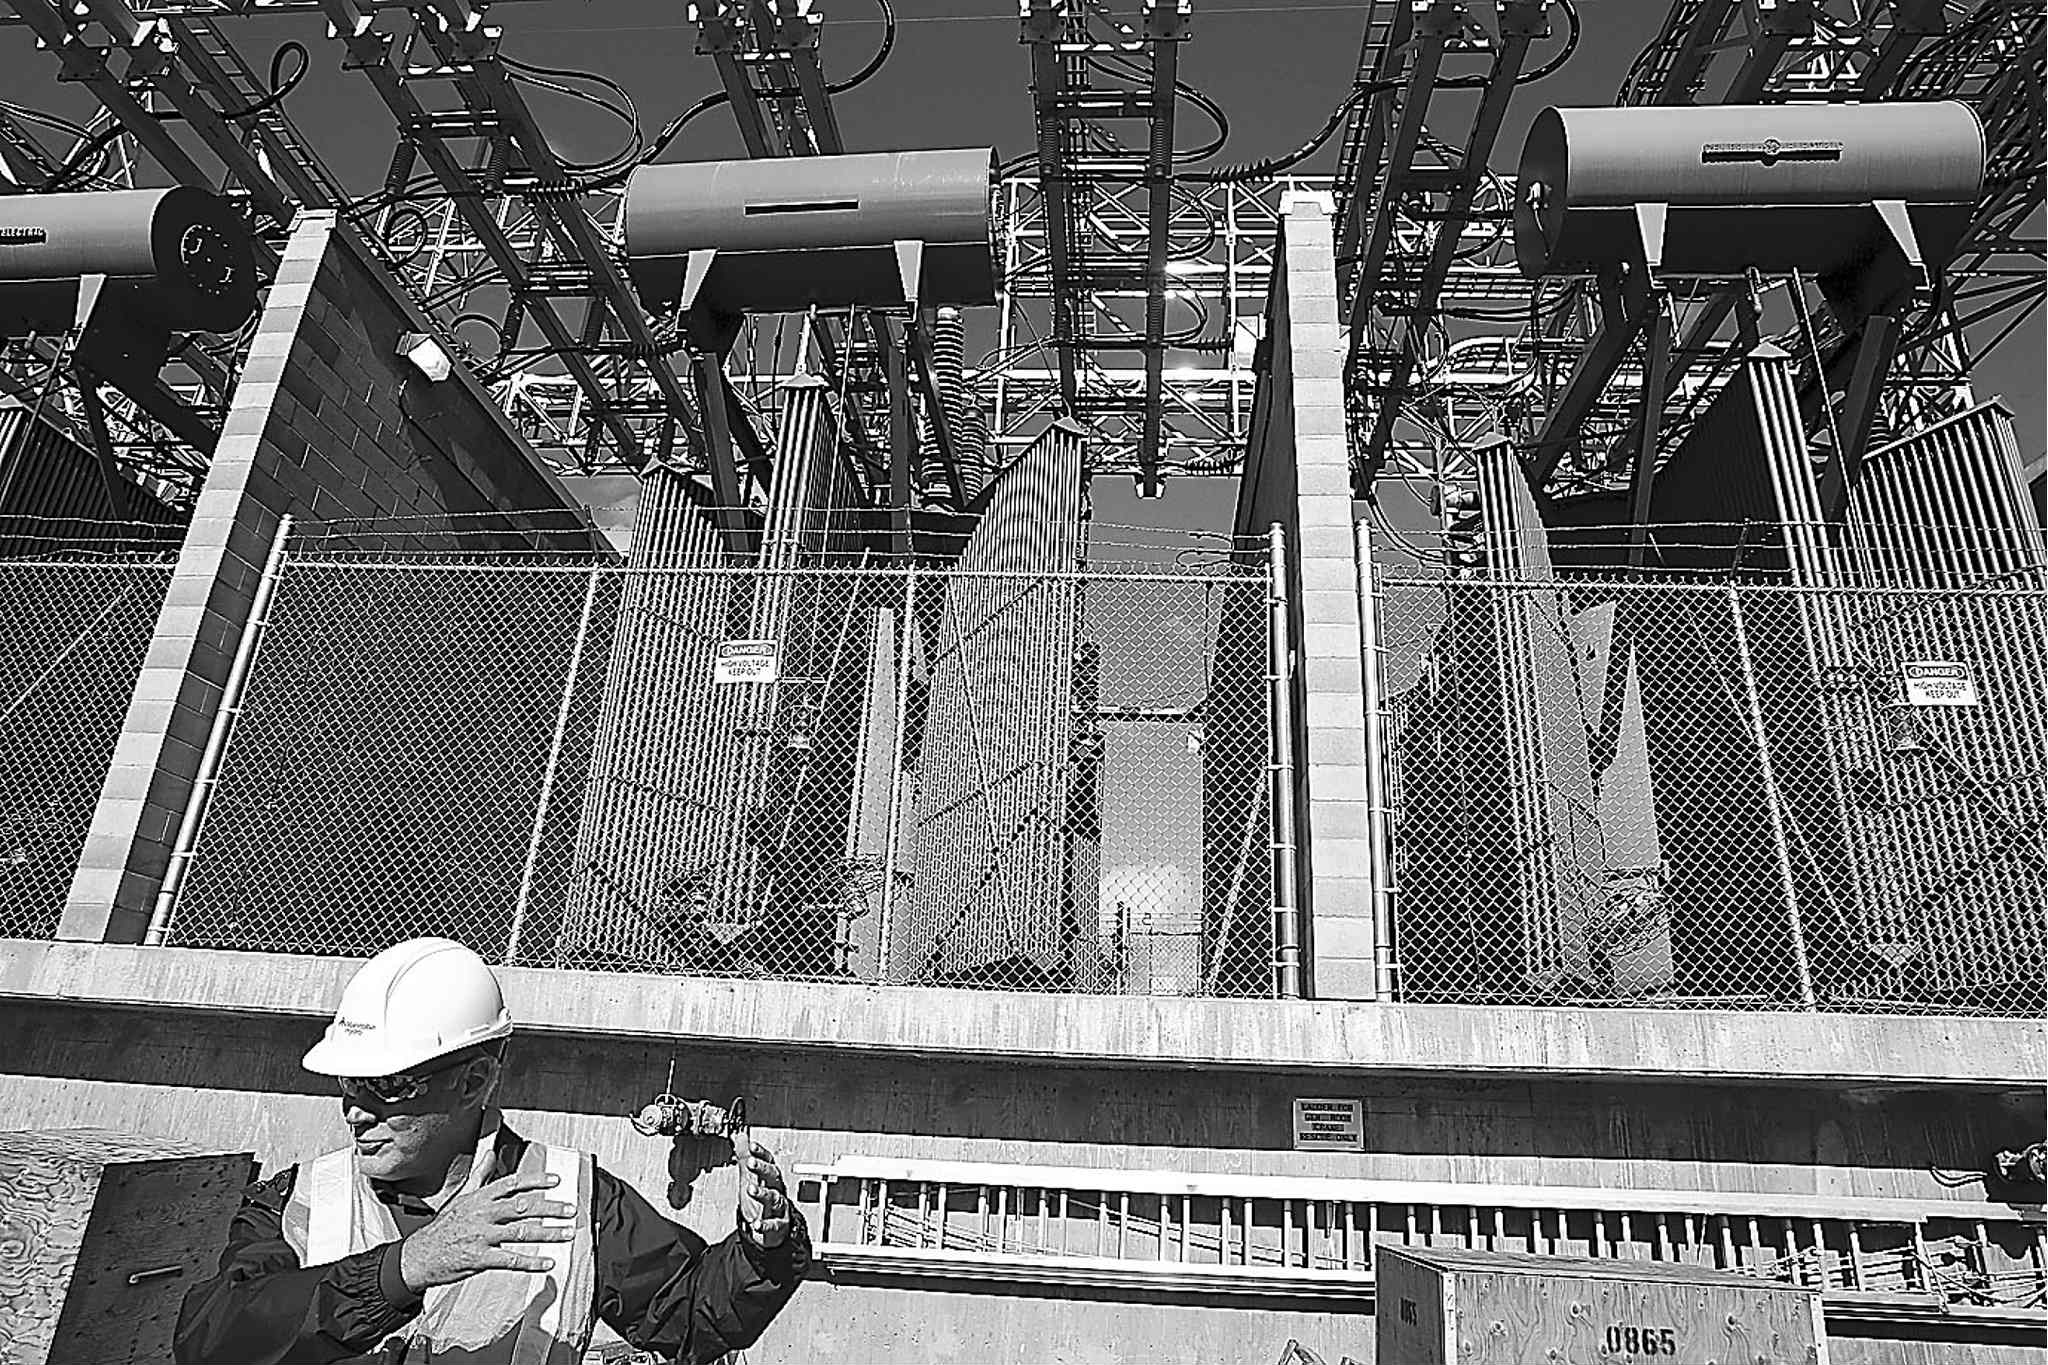 A Manitoba Hydro official stands beneath transformers at the Pointe du Bois generating station.